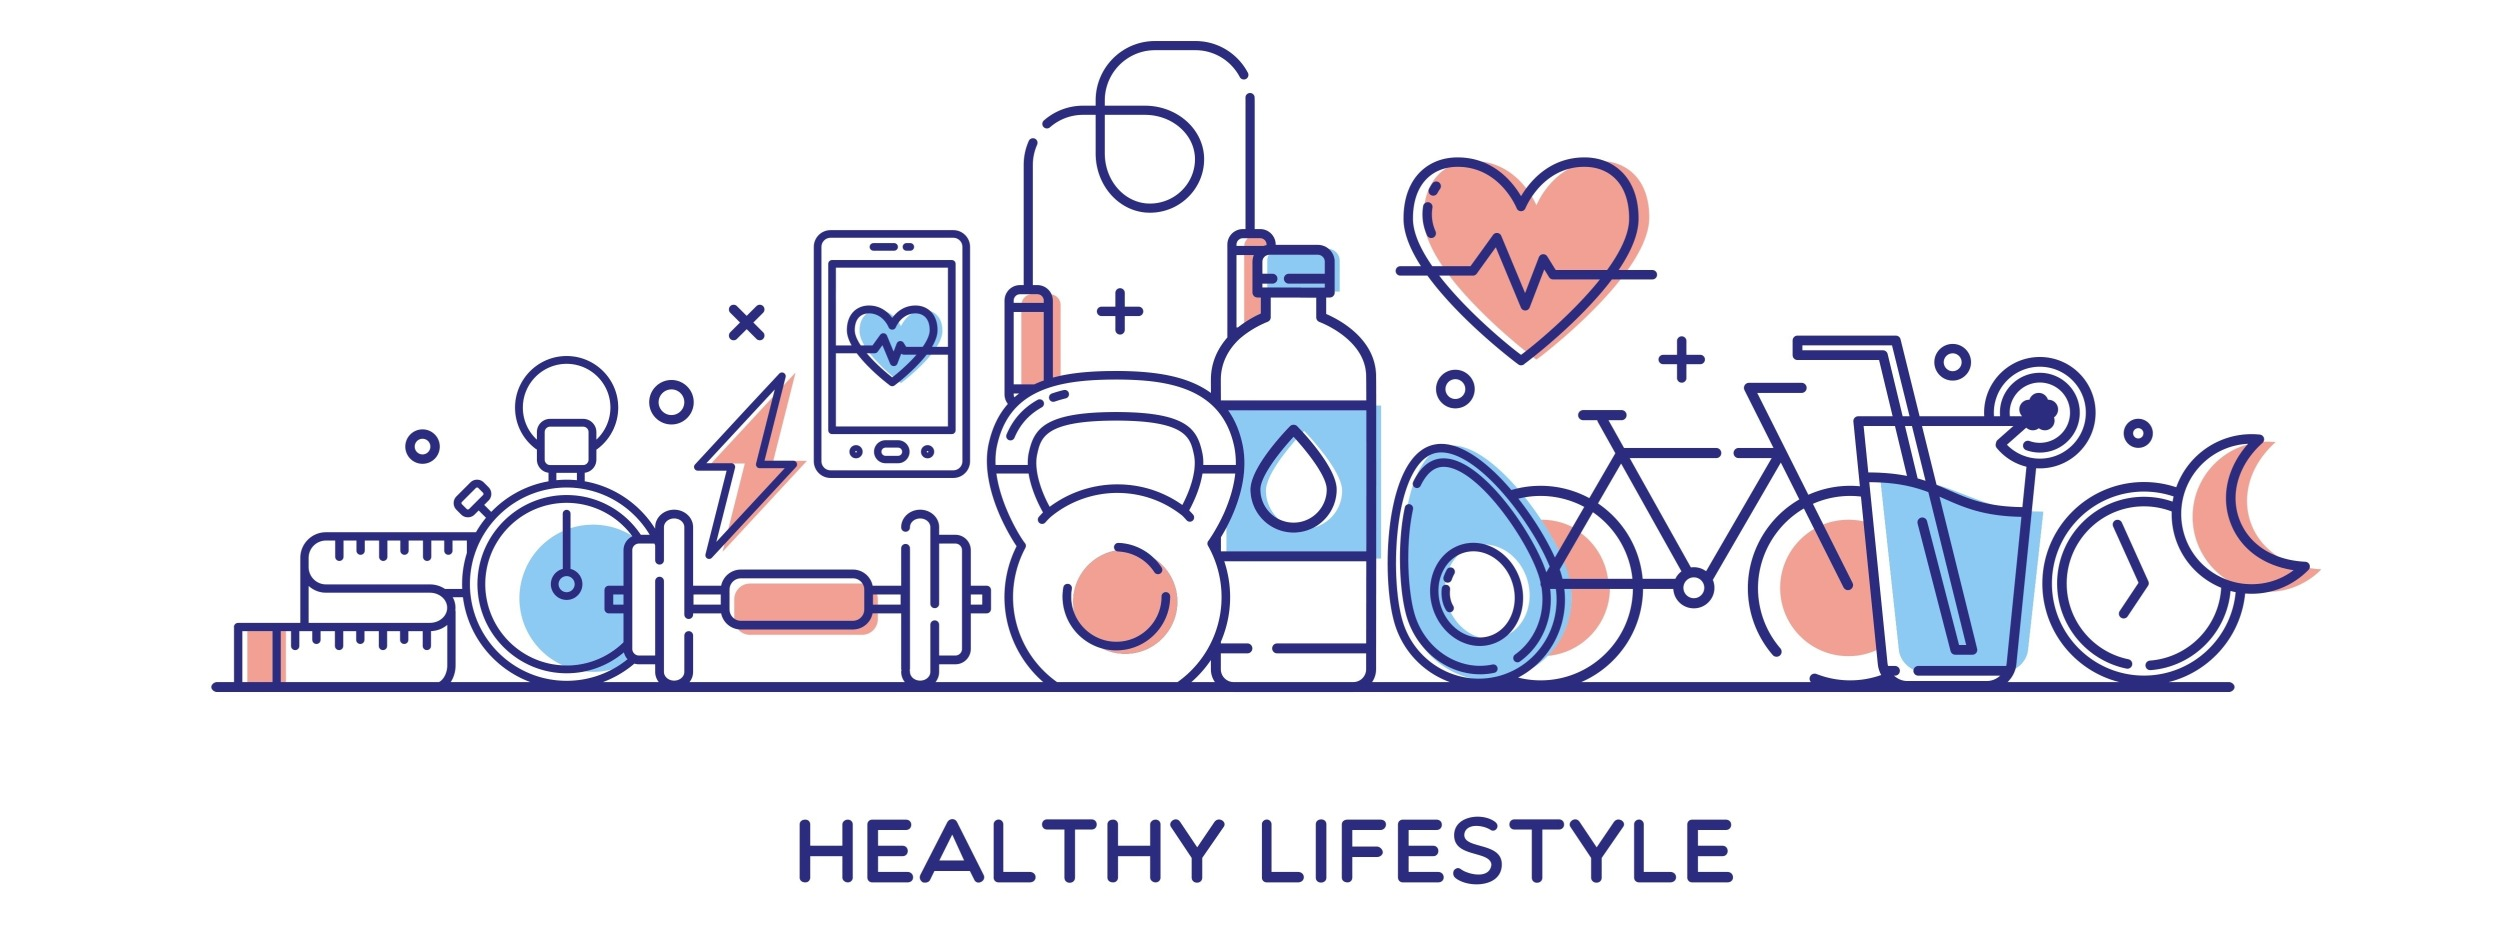 HEALTHY LIFESTYLE イラスト